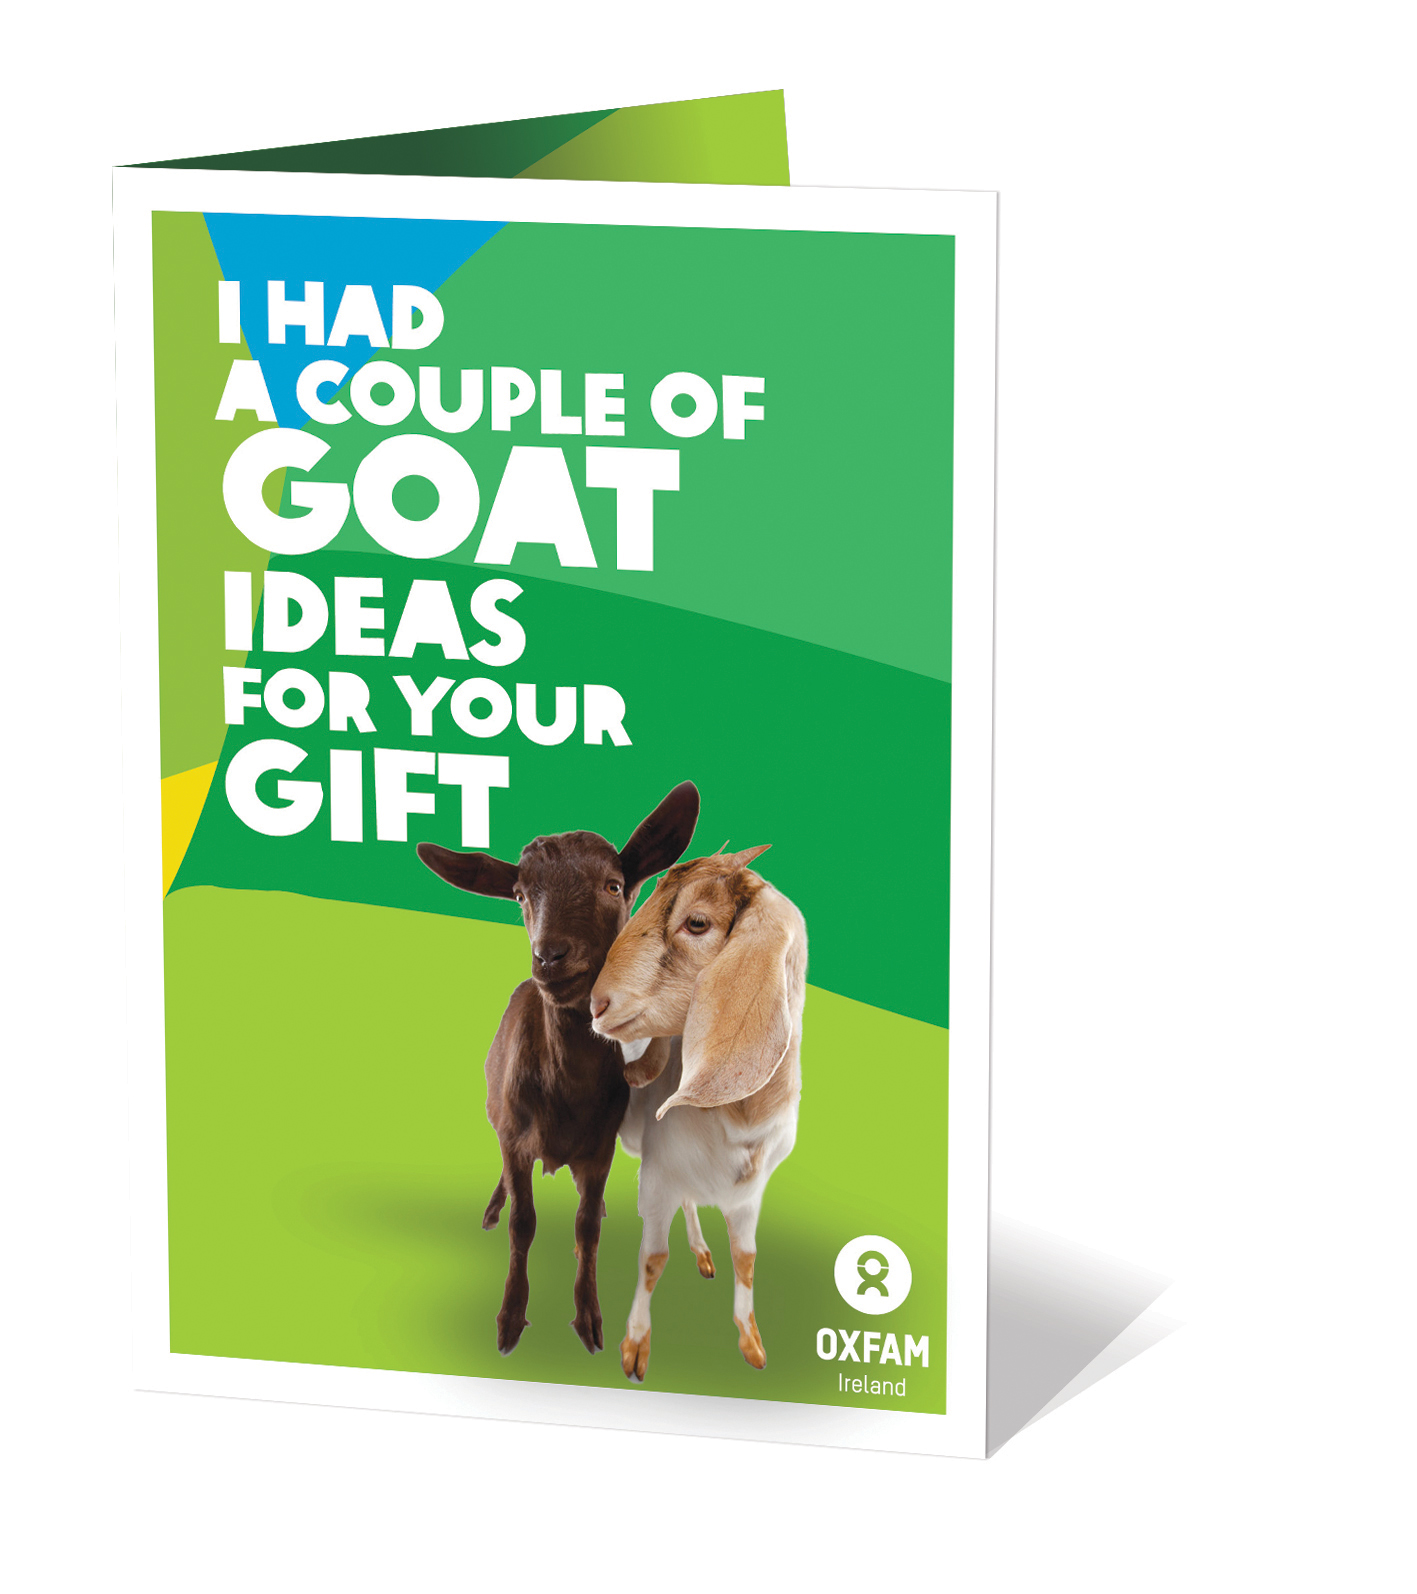 Oxfam Gift of 2 Goats